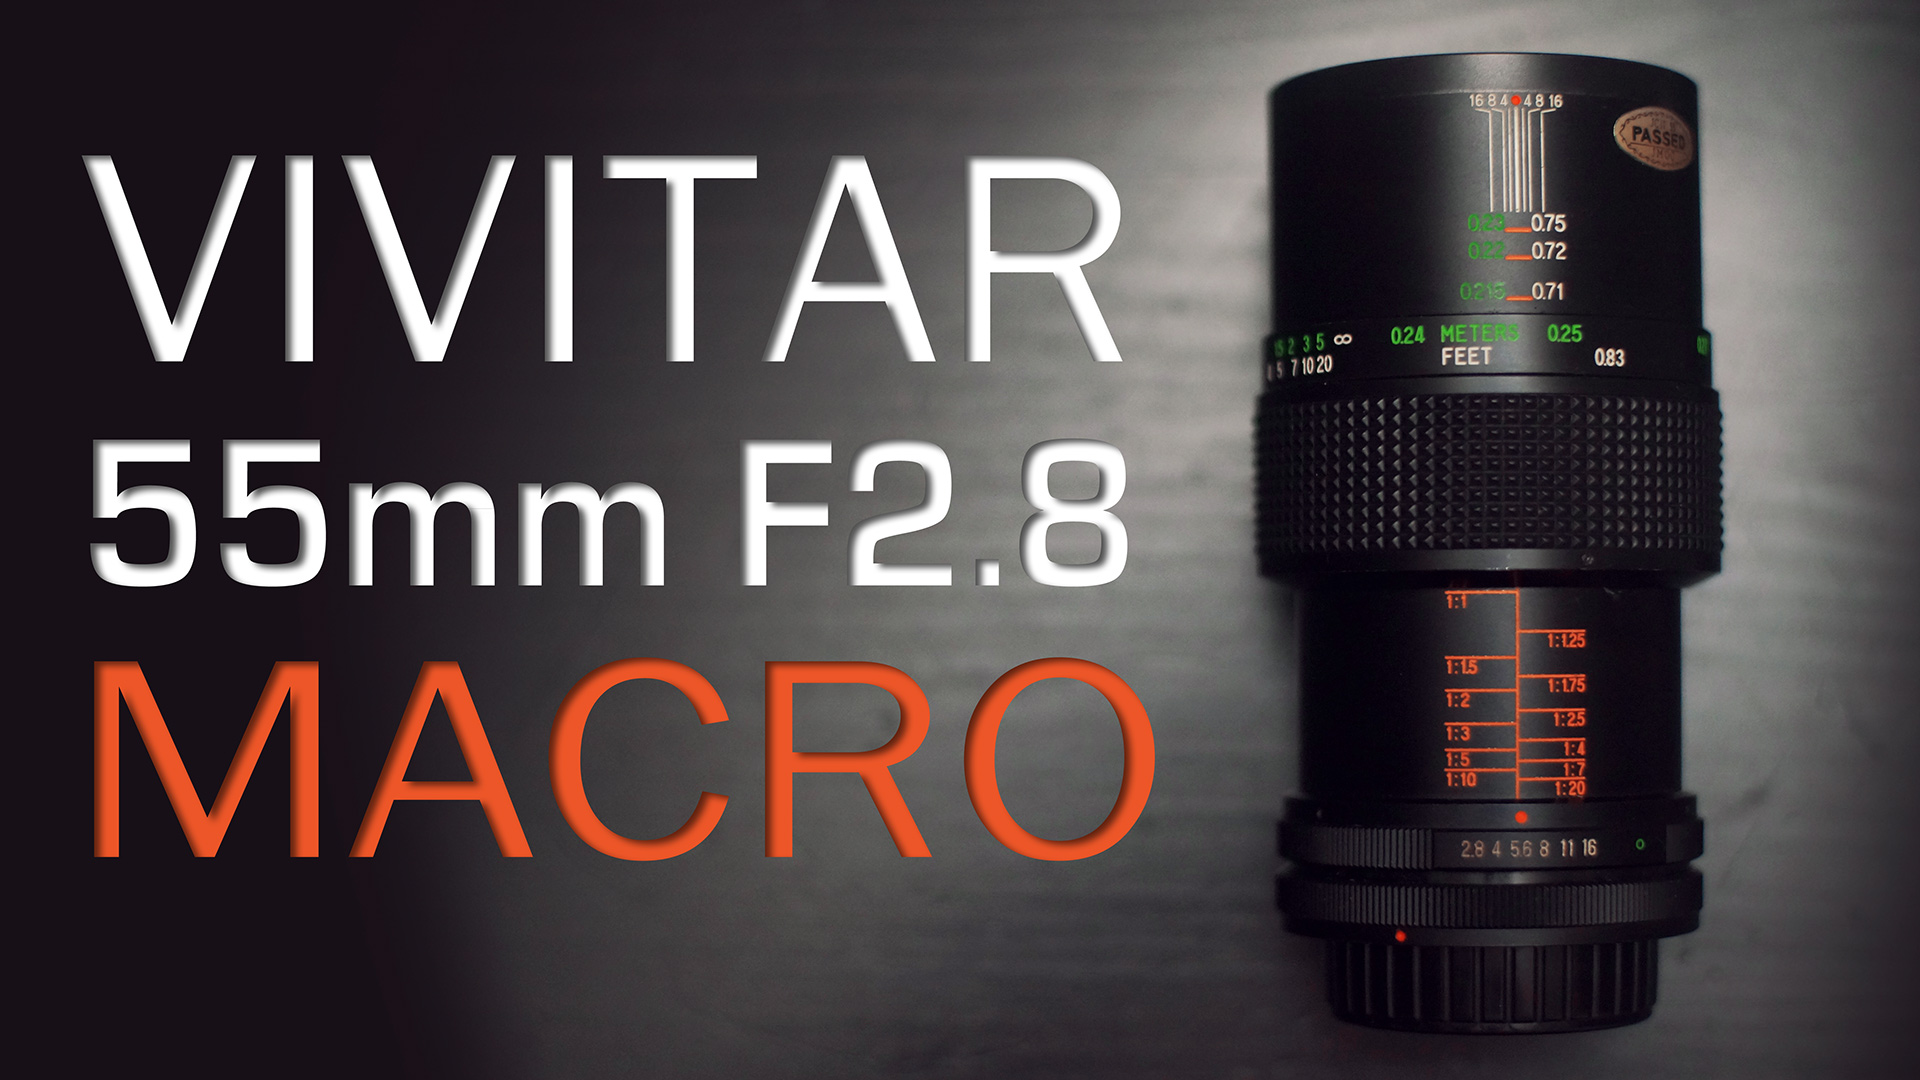 VIVITAR 55mm F2.8 1:1 MACRO REVIEW